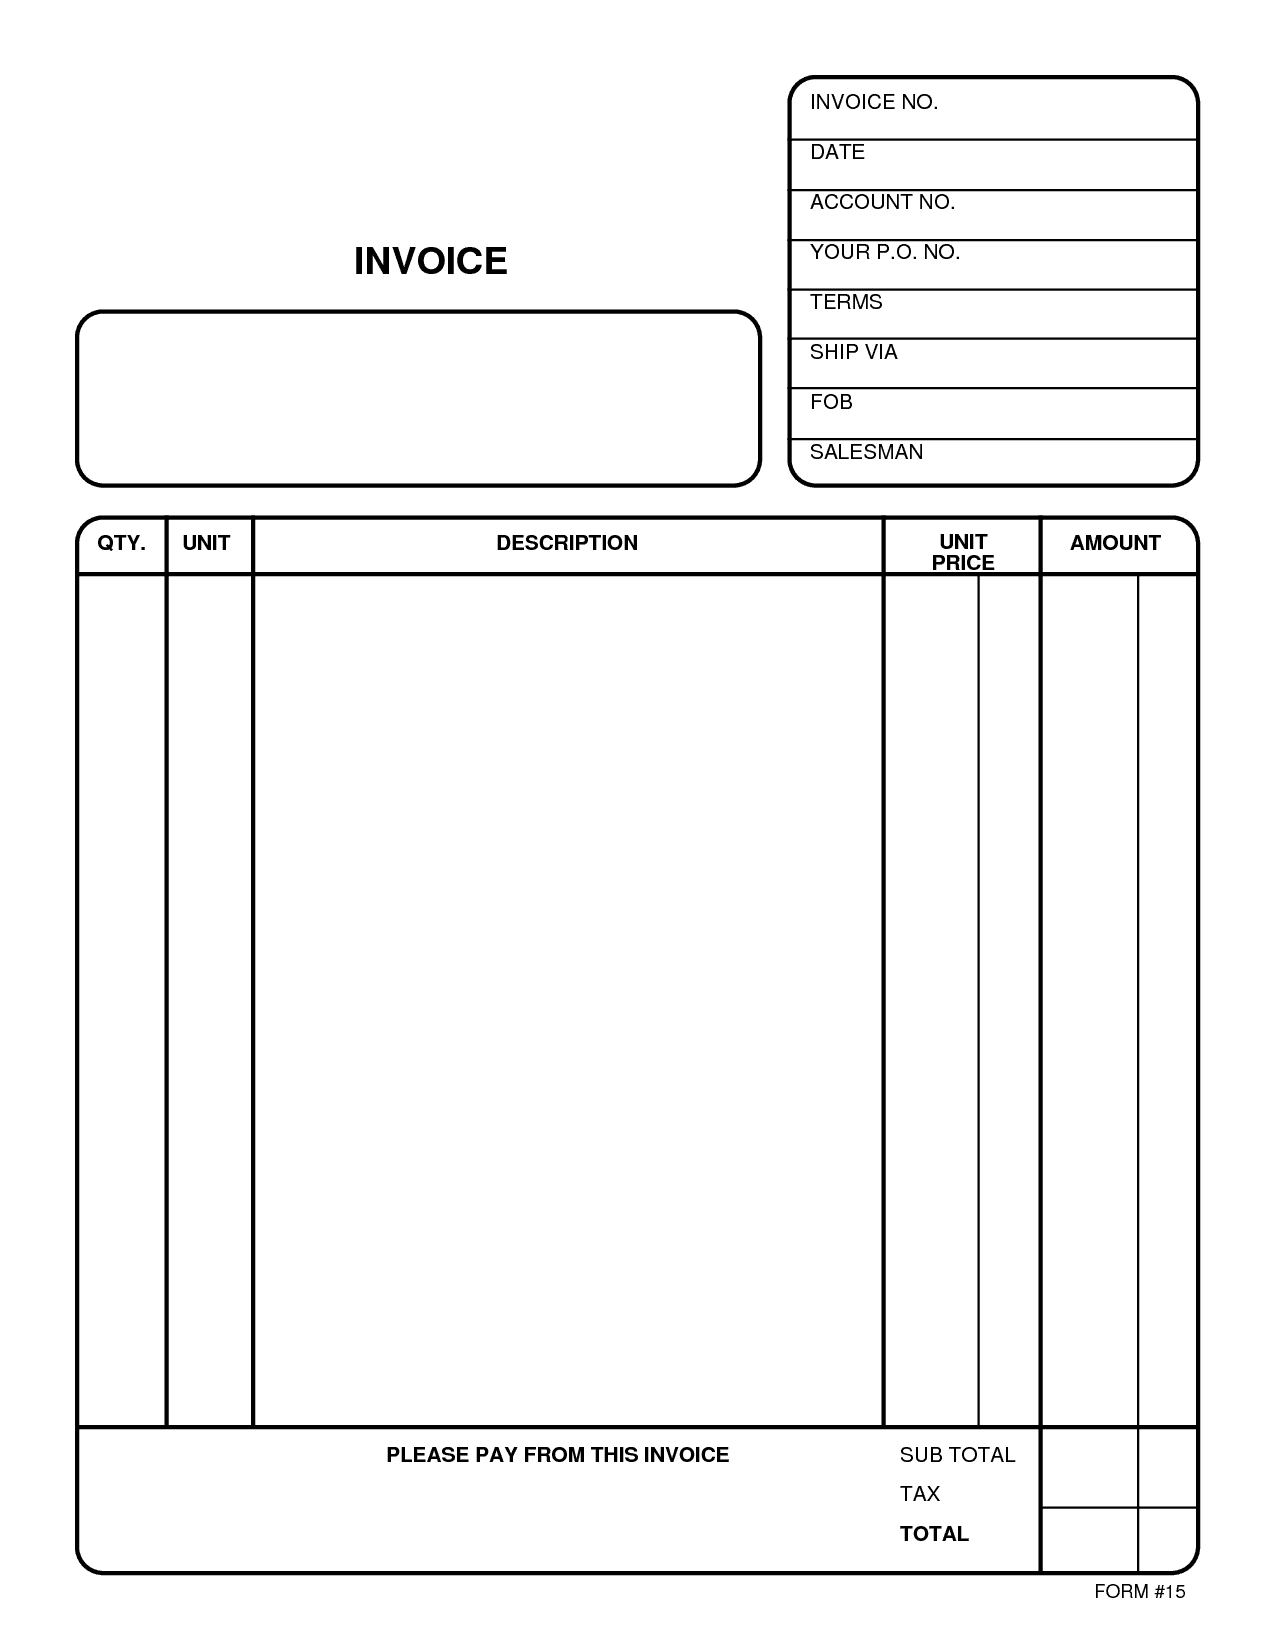 Free Printable Invoice Templates Word Invoice Template Open Office Spreadsheet Templates for Busines Spreadsheet Templates for Busines Invoice Template Open Office Writer